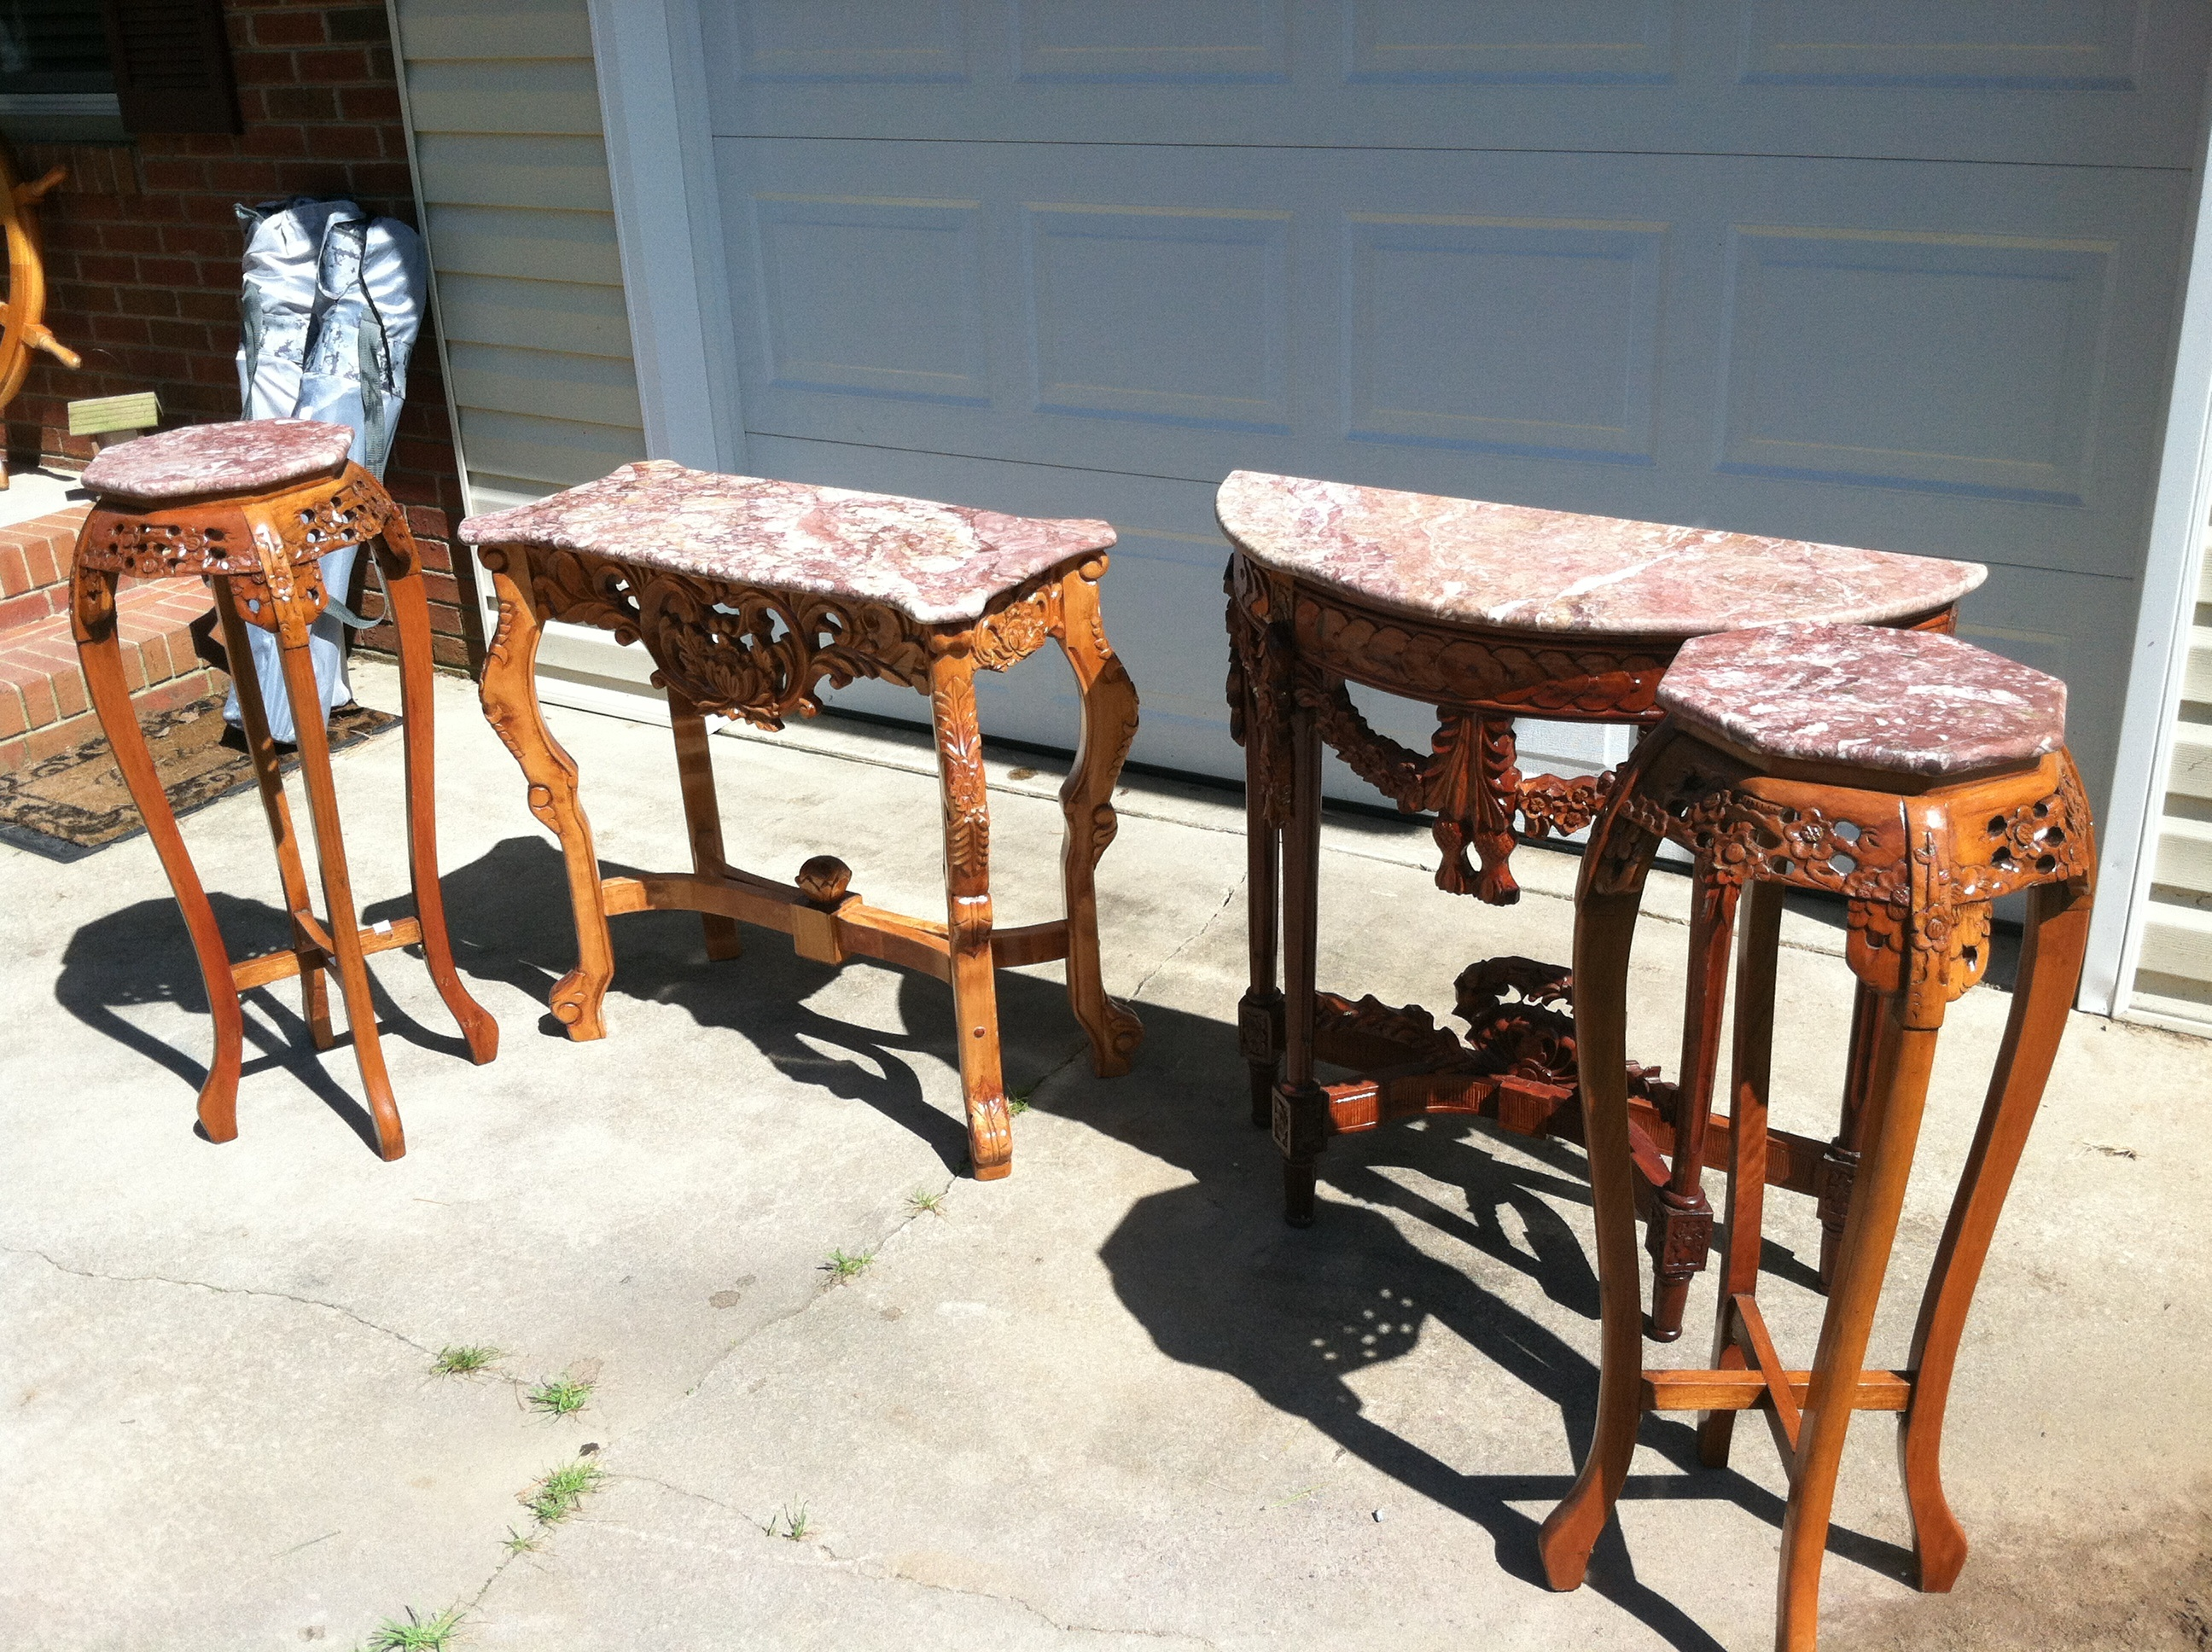 This Is A 4 Piece Hand Carved Marble Top Tables. Two Are Plant Stands/fern  Stands, With One Half Moon/ Entry Table, And The Other Is Regular Four  Legged ...